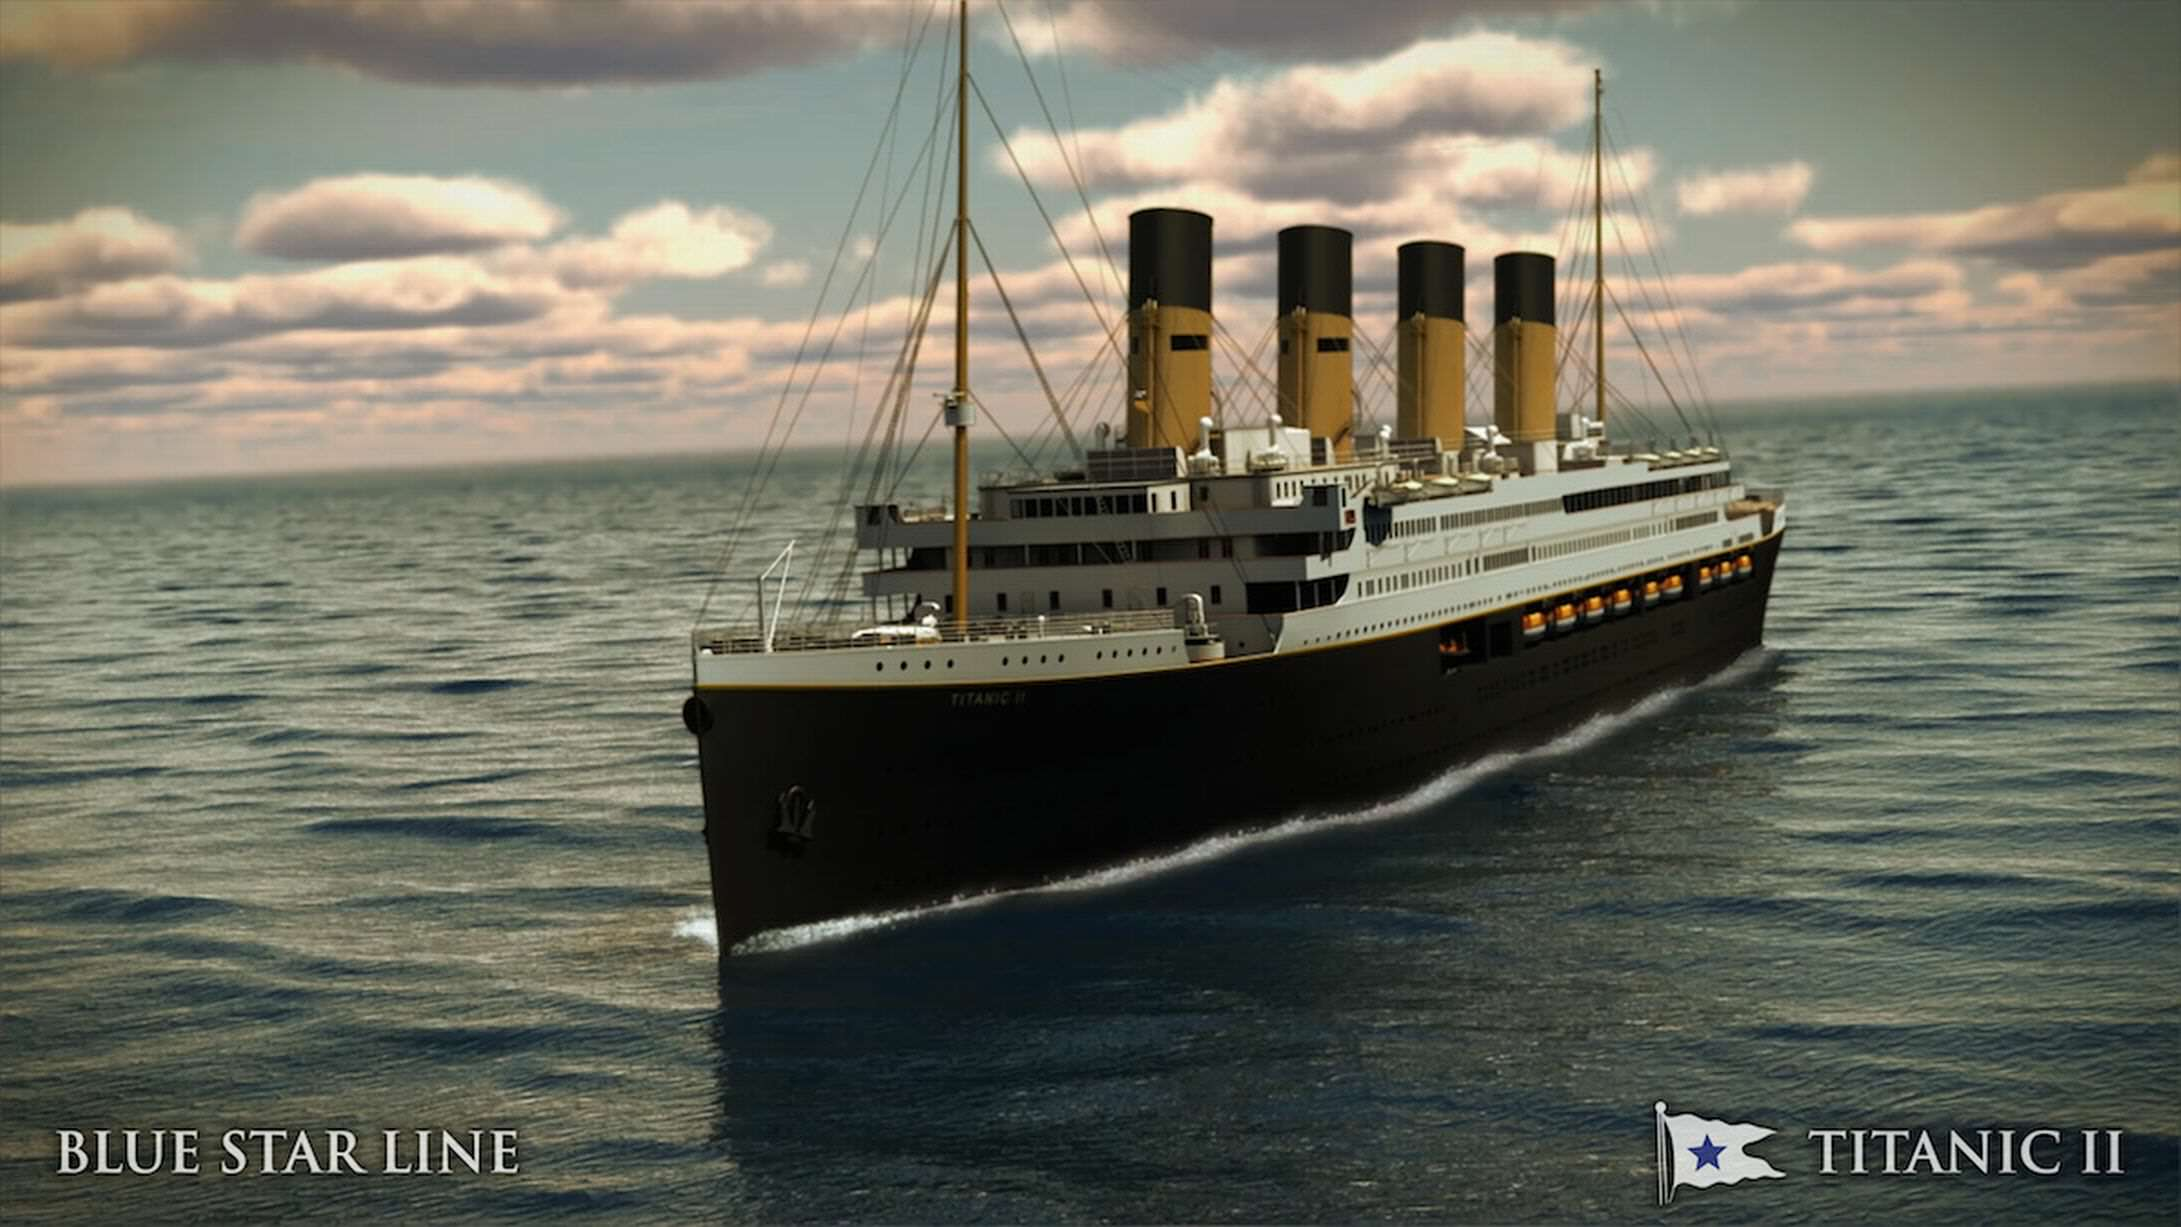 Incredible New Photos Give First Look Inside Titanic 2 titanic new 3